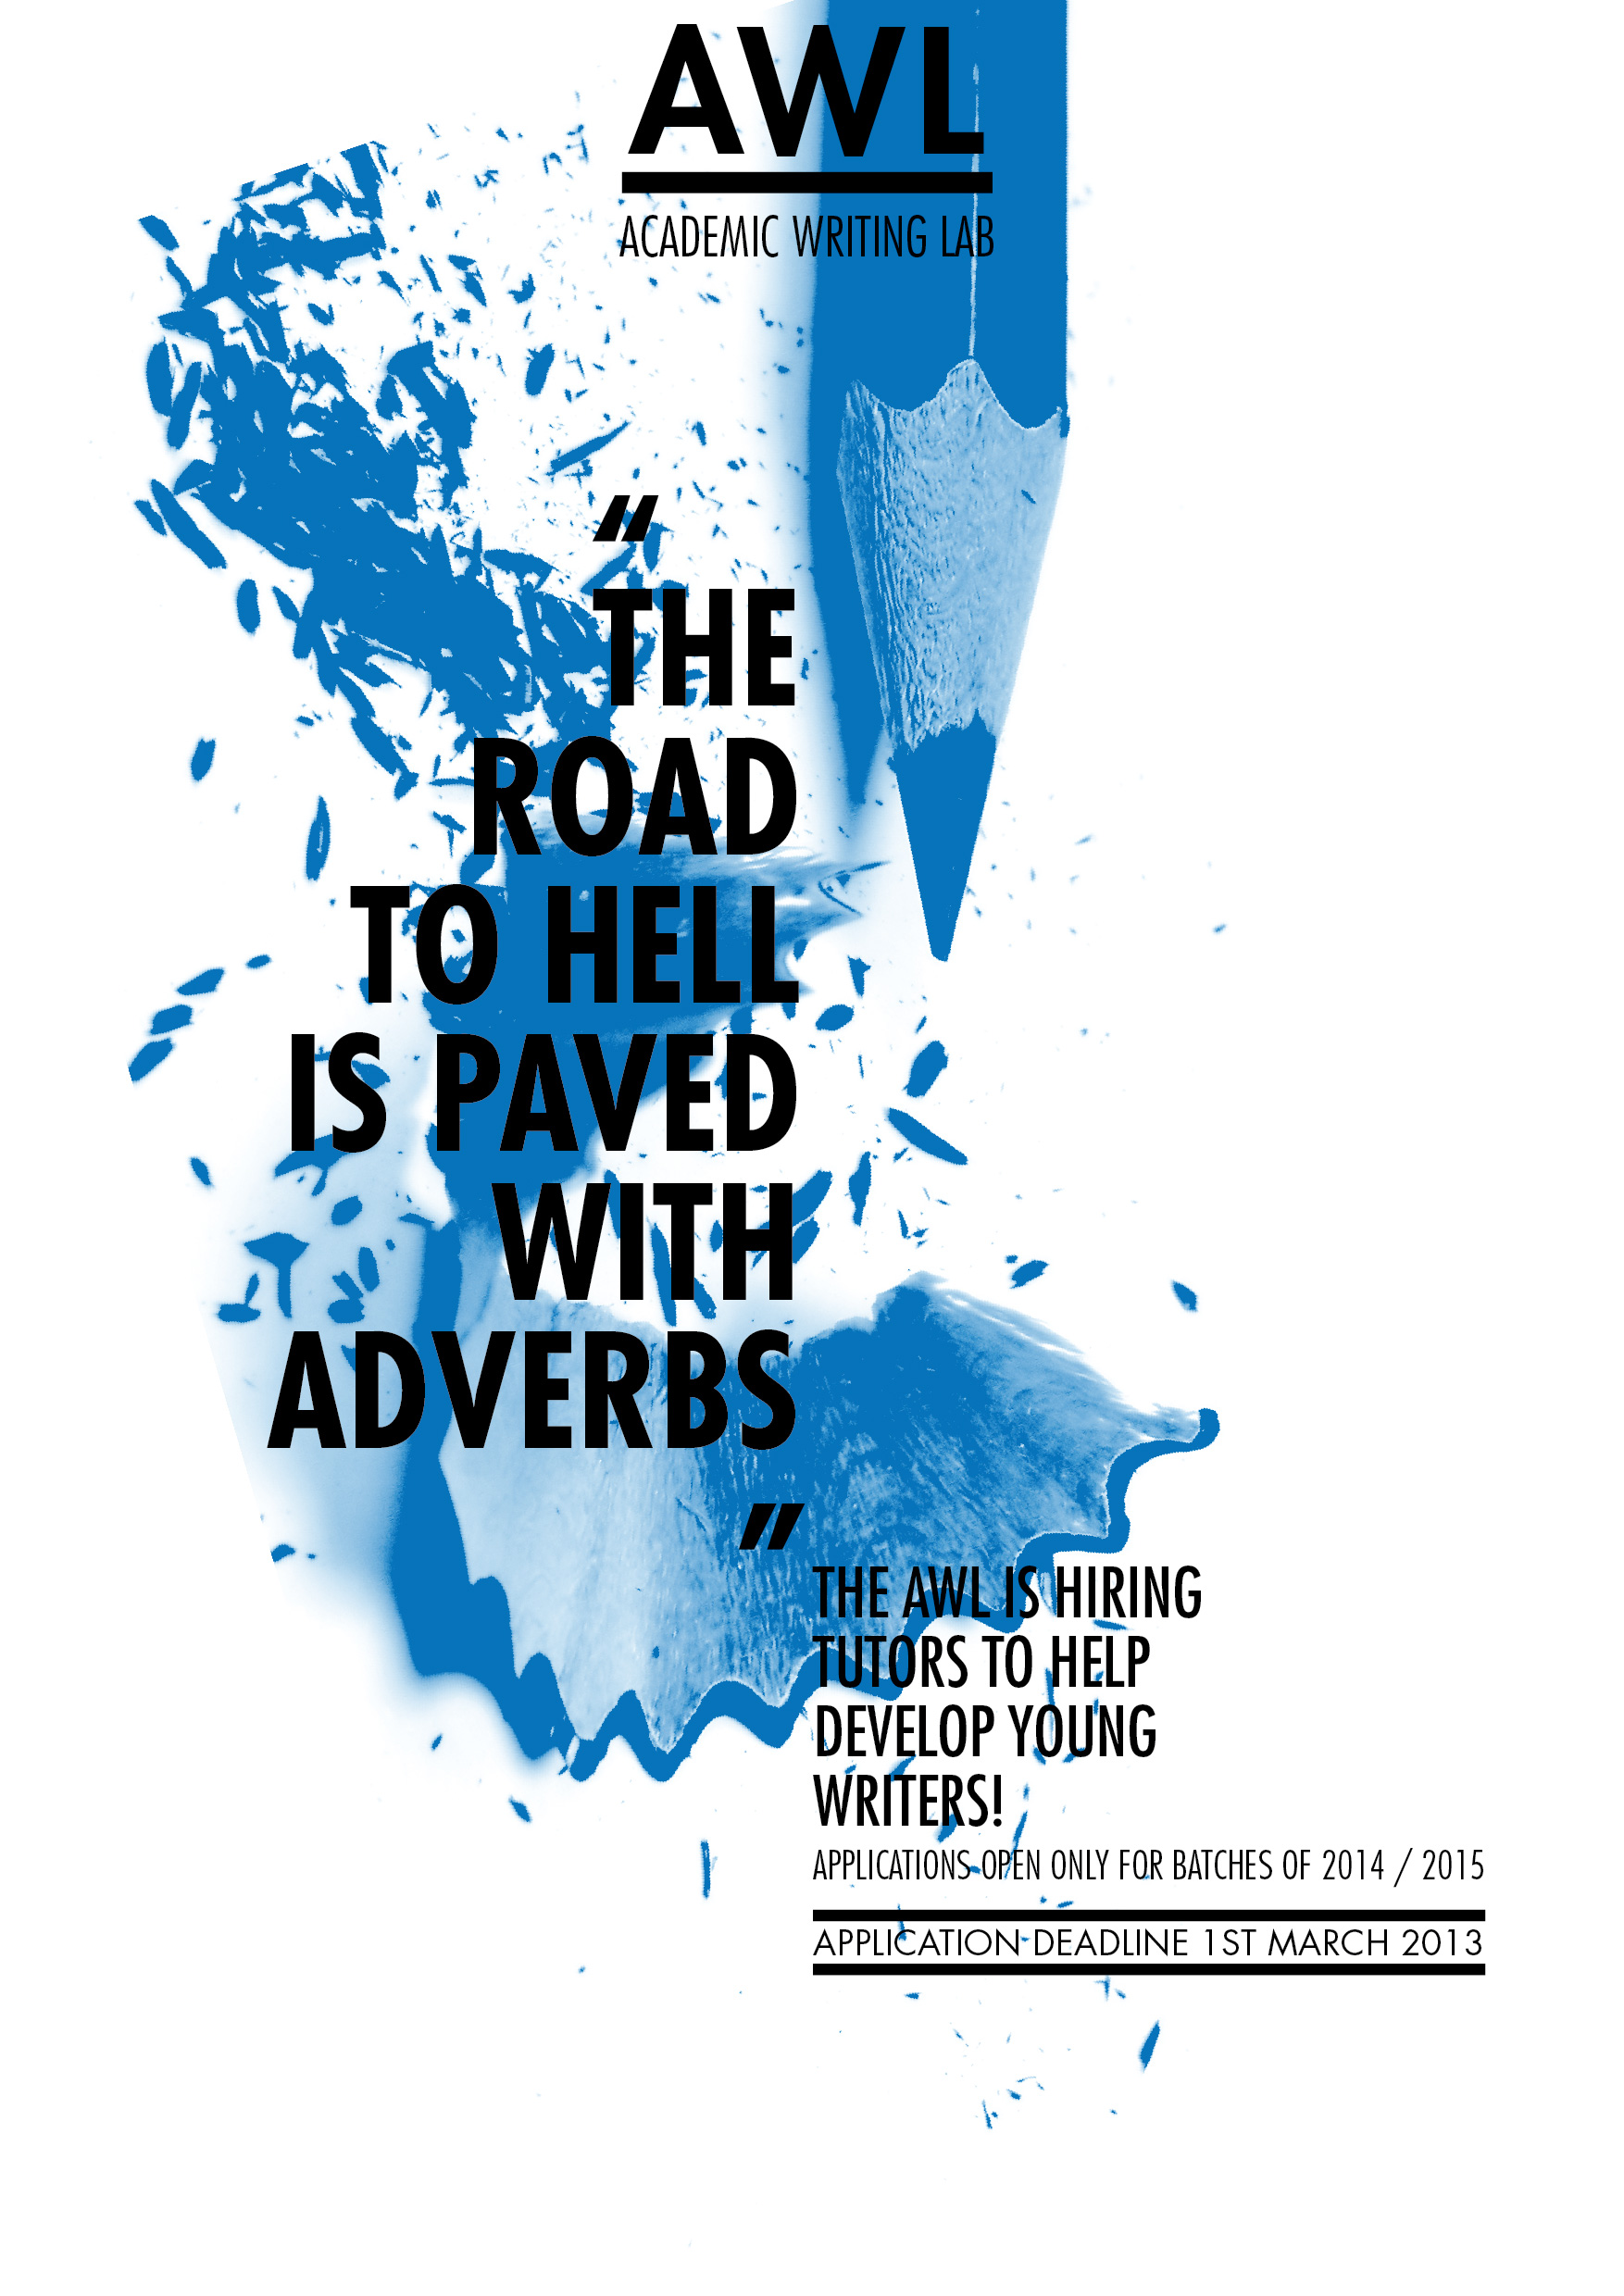 The road to hell is paved with adverbs